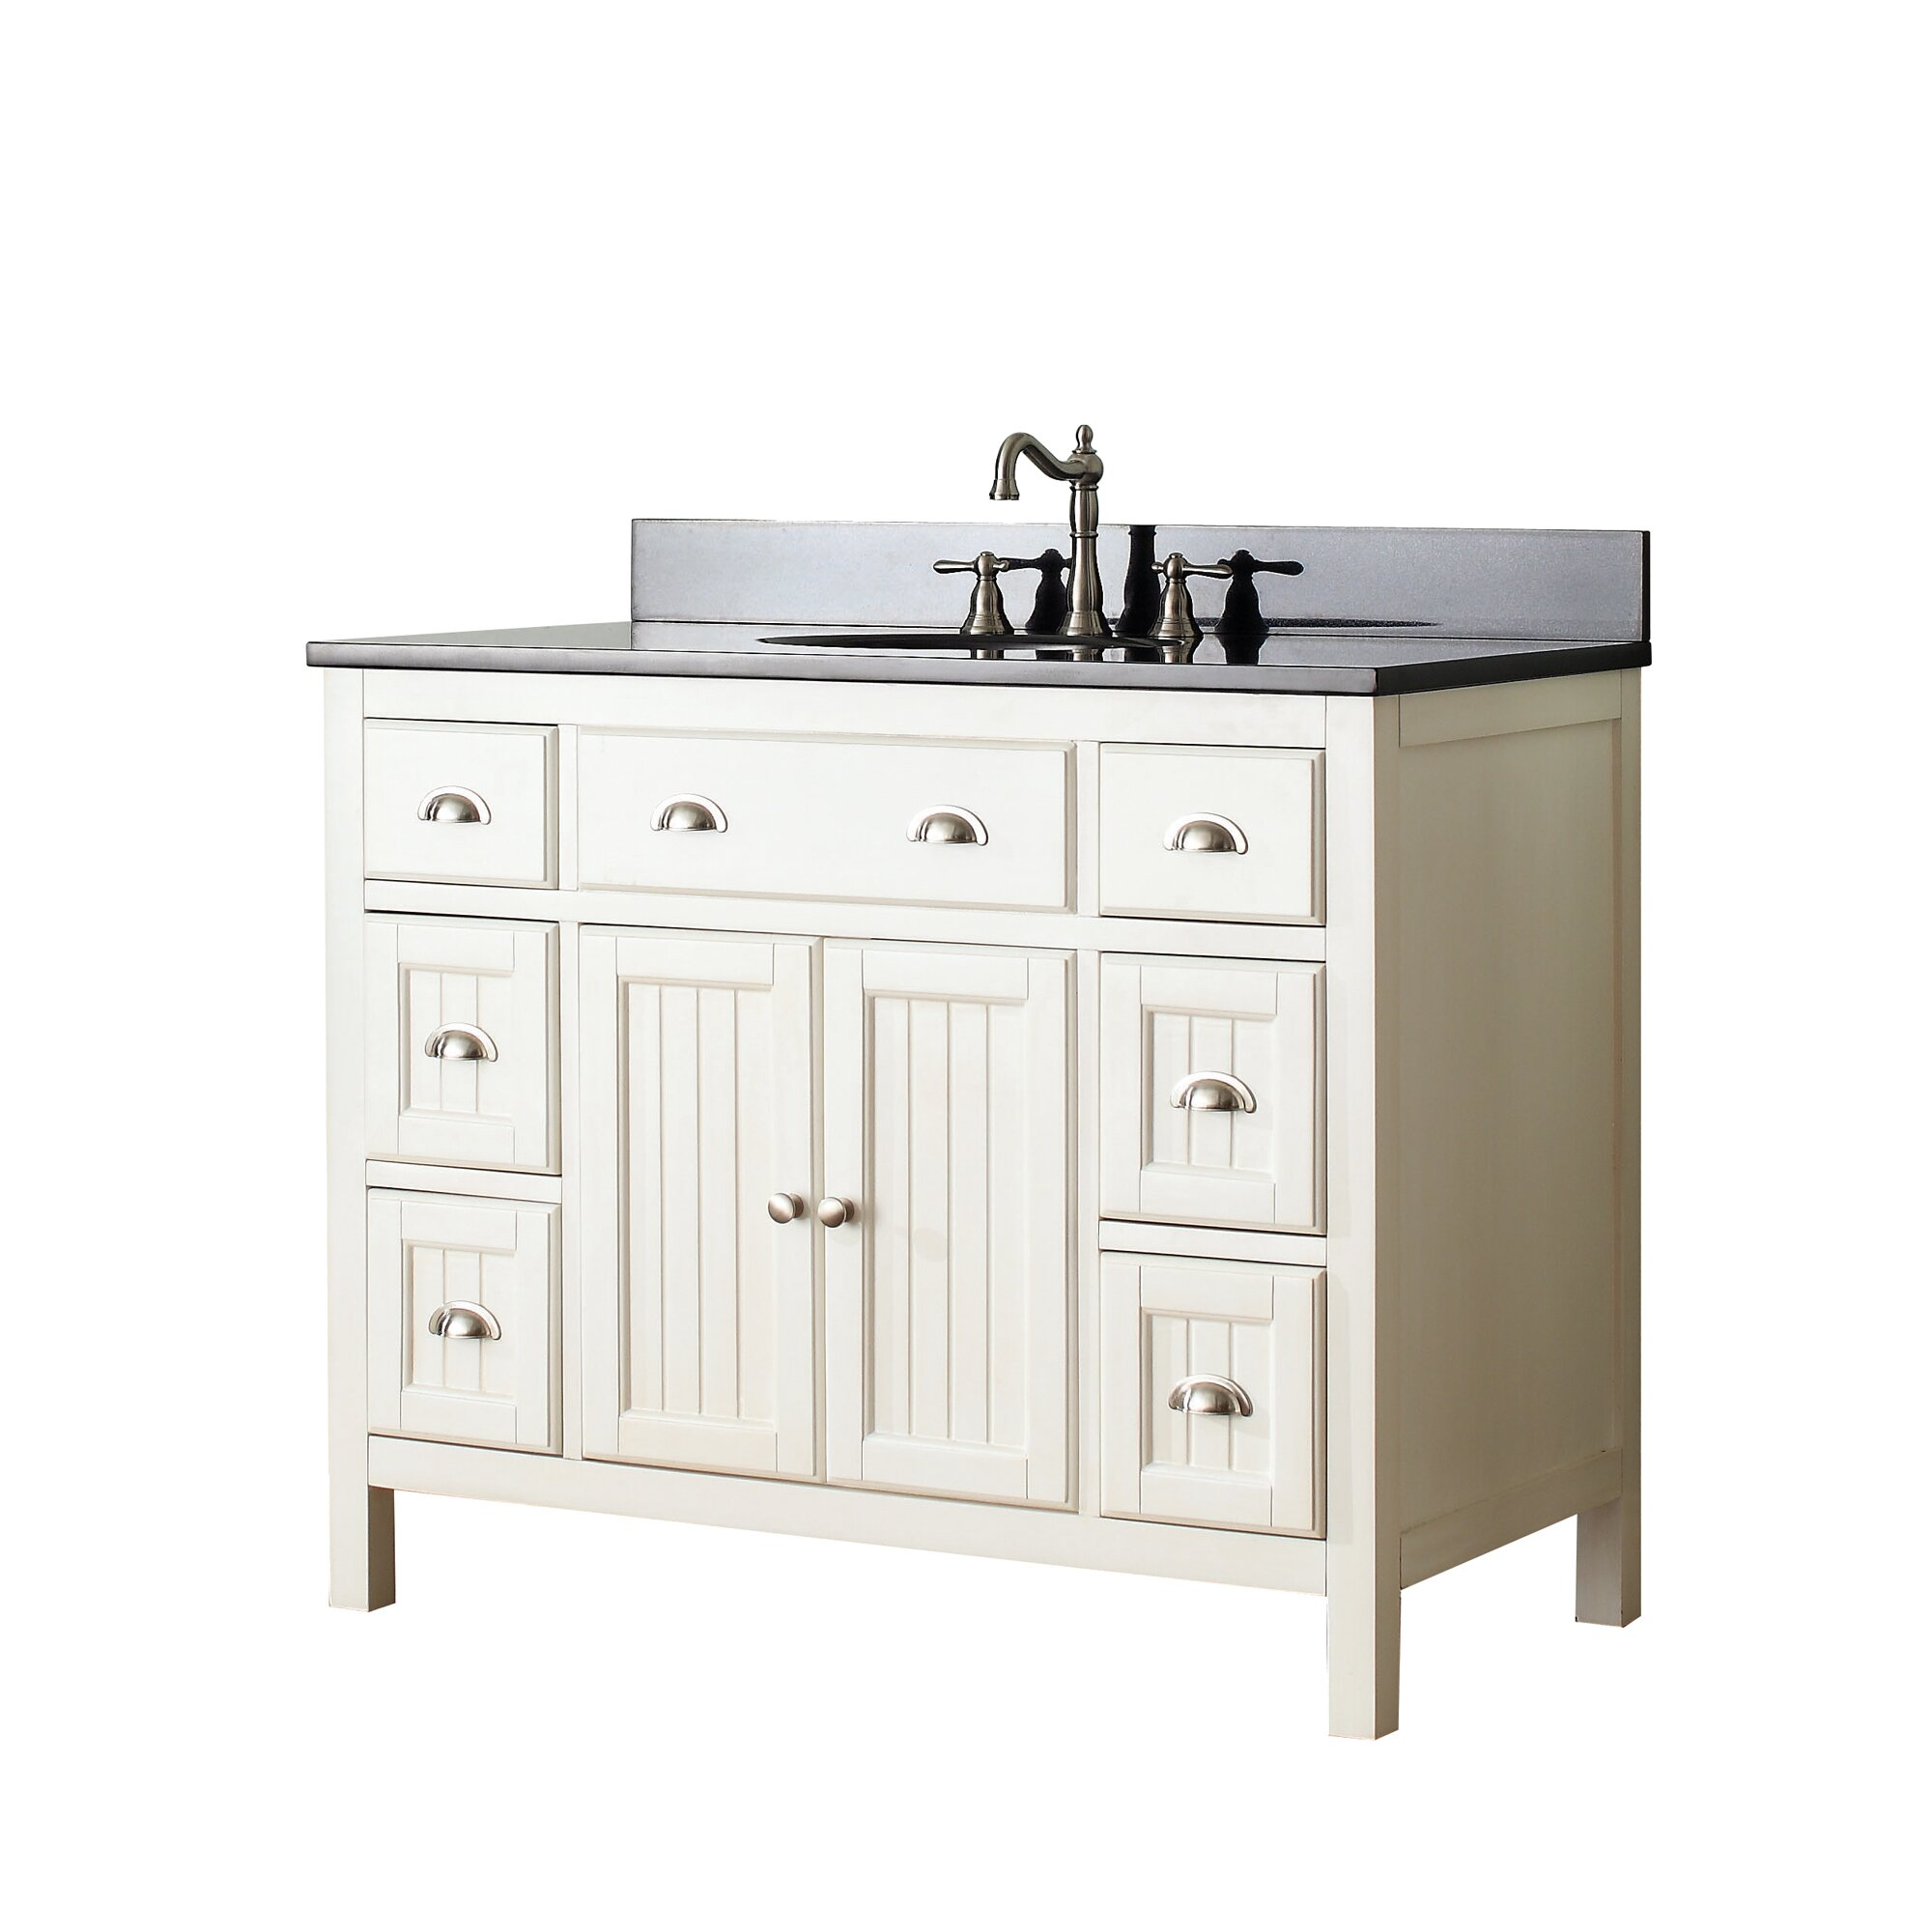 Attractive 43 Bathroom Vanity #11: Avanity Hamilton 43u0026amp;quot; Single Bathroom Vanity Set